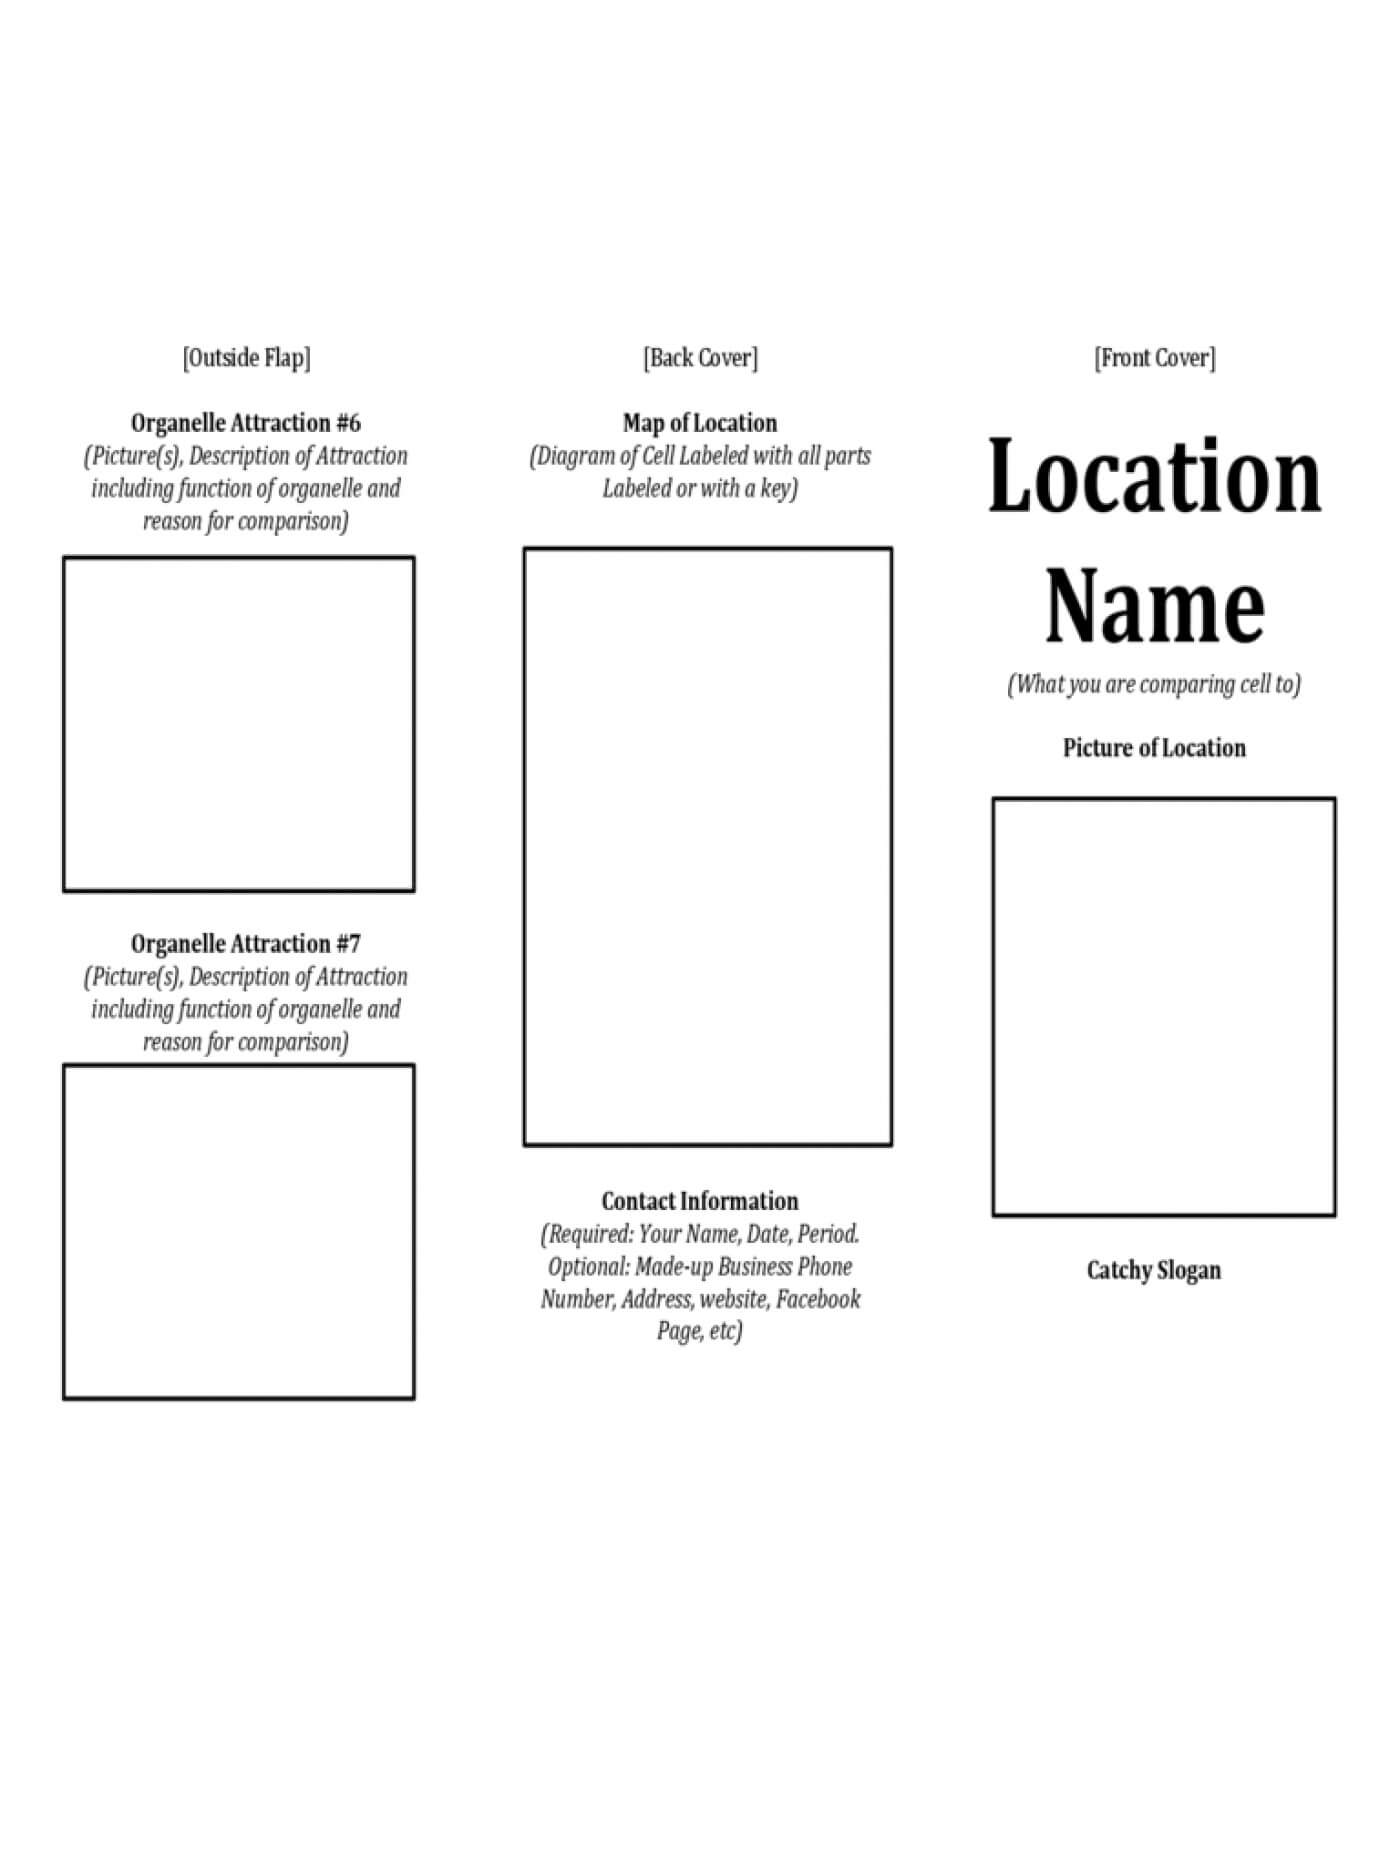 020 Template Ideas Travel Brochure Ks2 New For Students with Travel Brochure Template Ks2